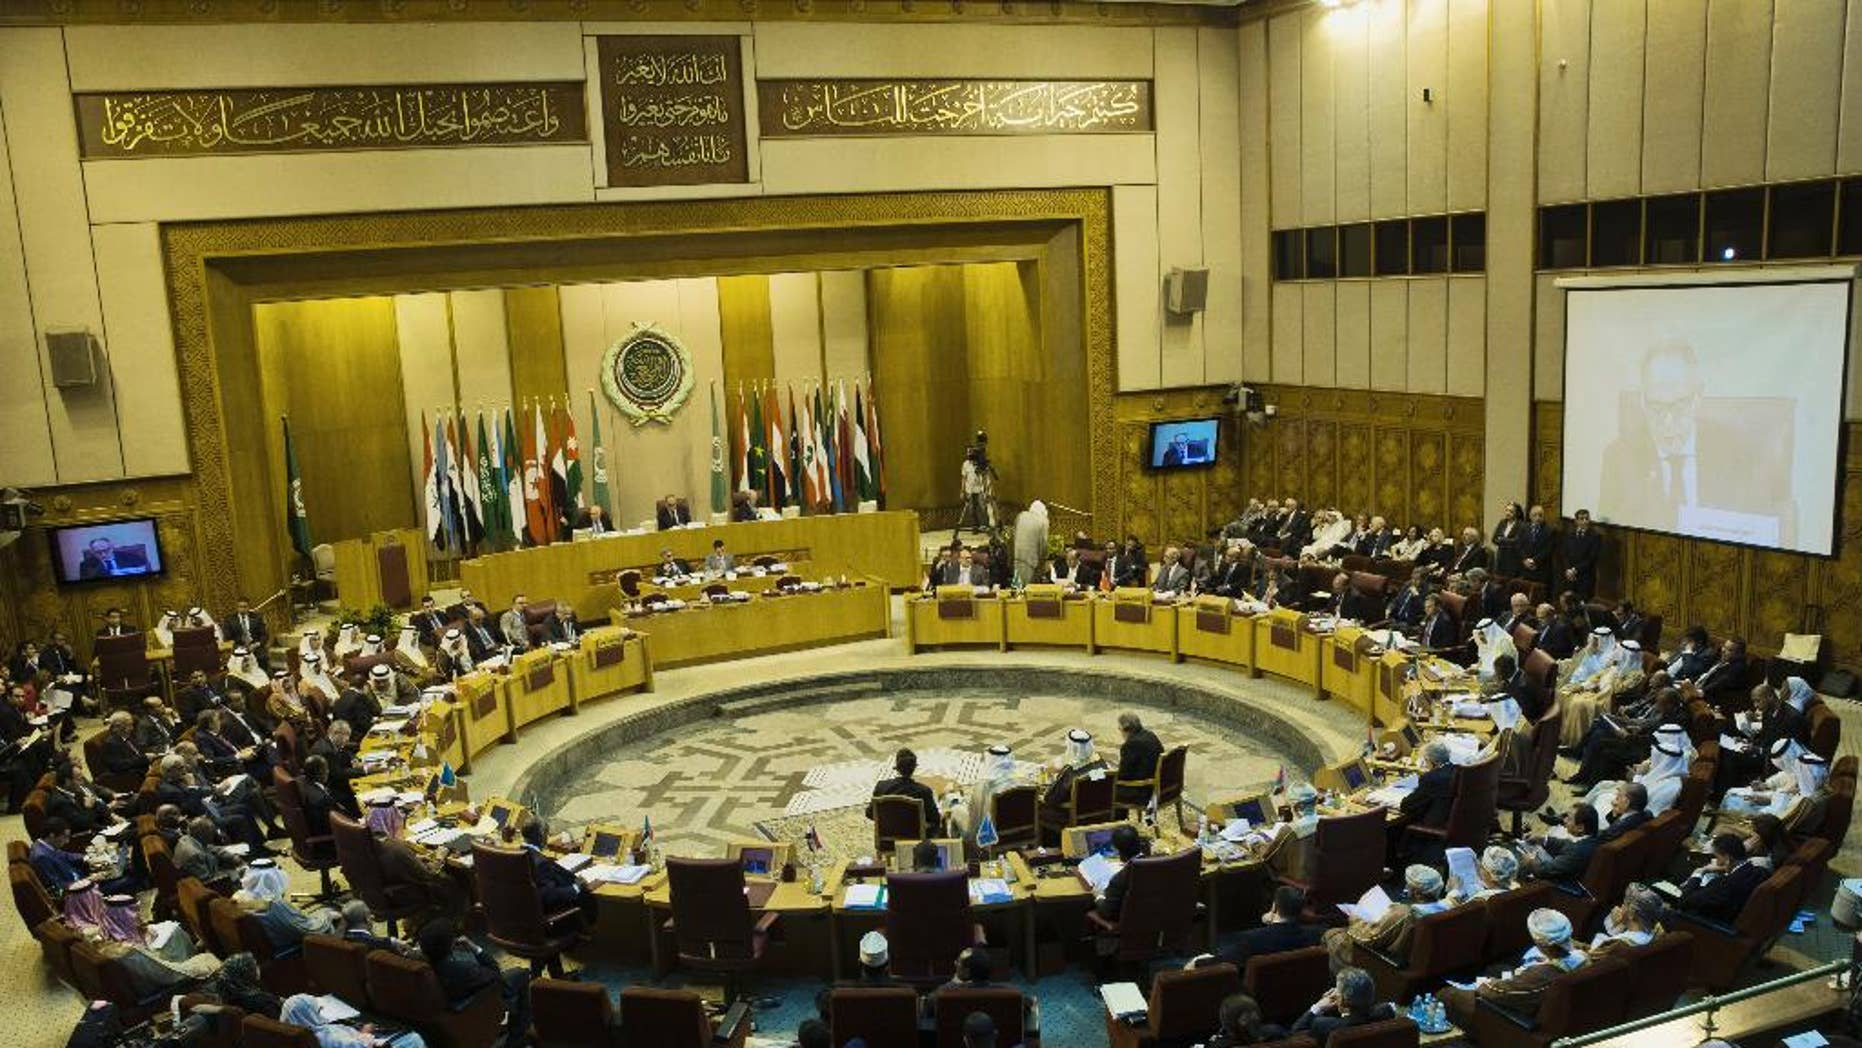 Arab foreign ministers take their seats for their meeting at the Arab League headquarters in Cairo, Egypt, Sunday, Sept. 7, 2014. Abbas, who has threatened to dissolve a new unity government if the Hamas militant group does not yield power in the Gaza Strip, attended the meeting in Cairo on Sunday. (AP Photo/Hassan Ammar)